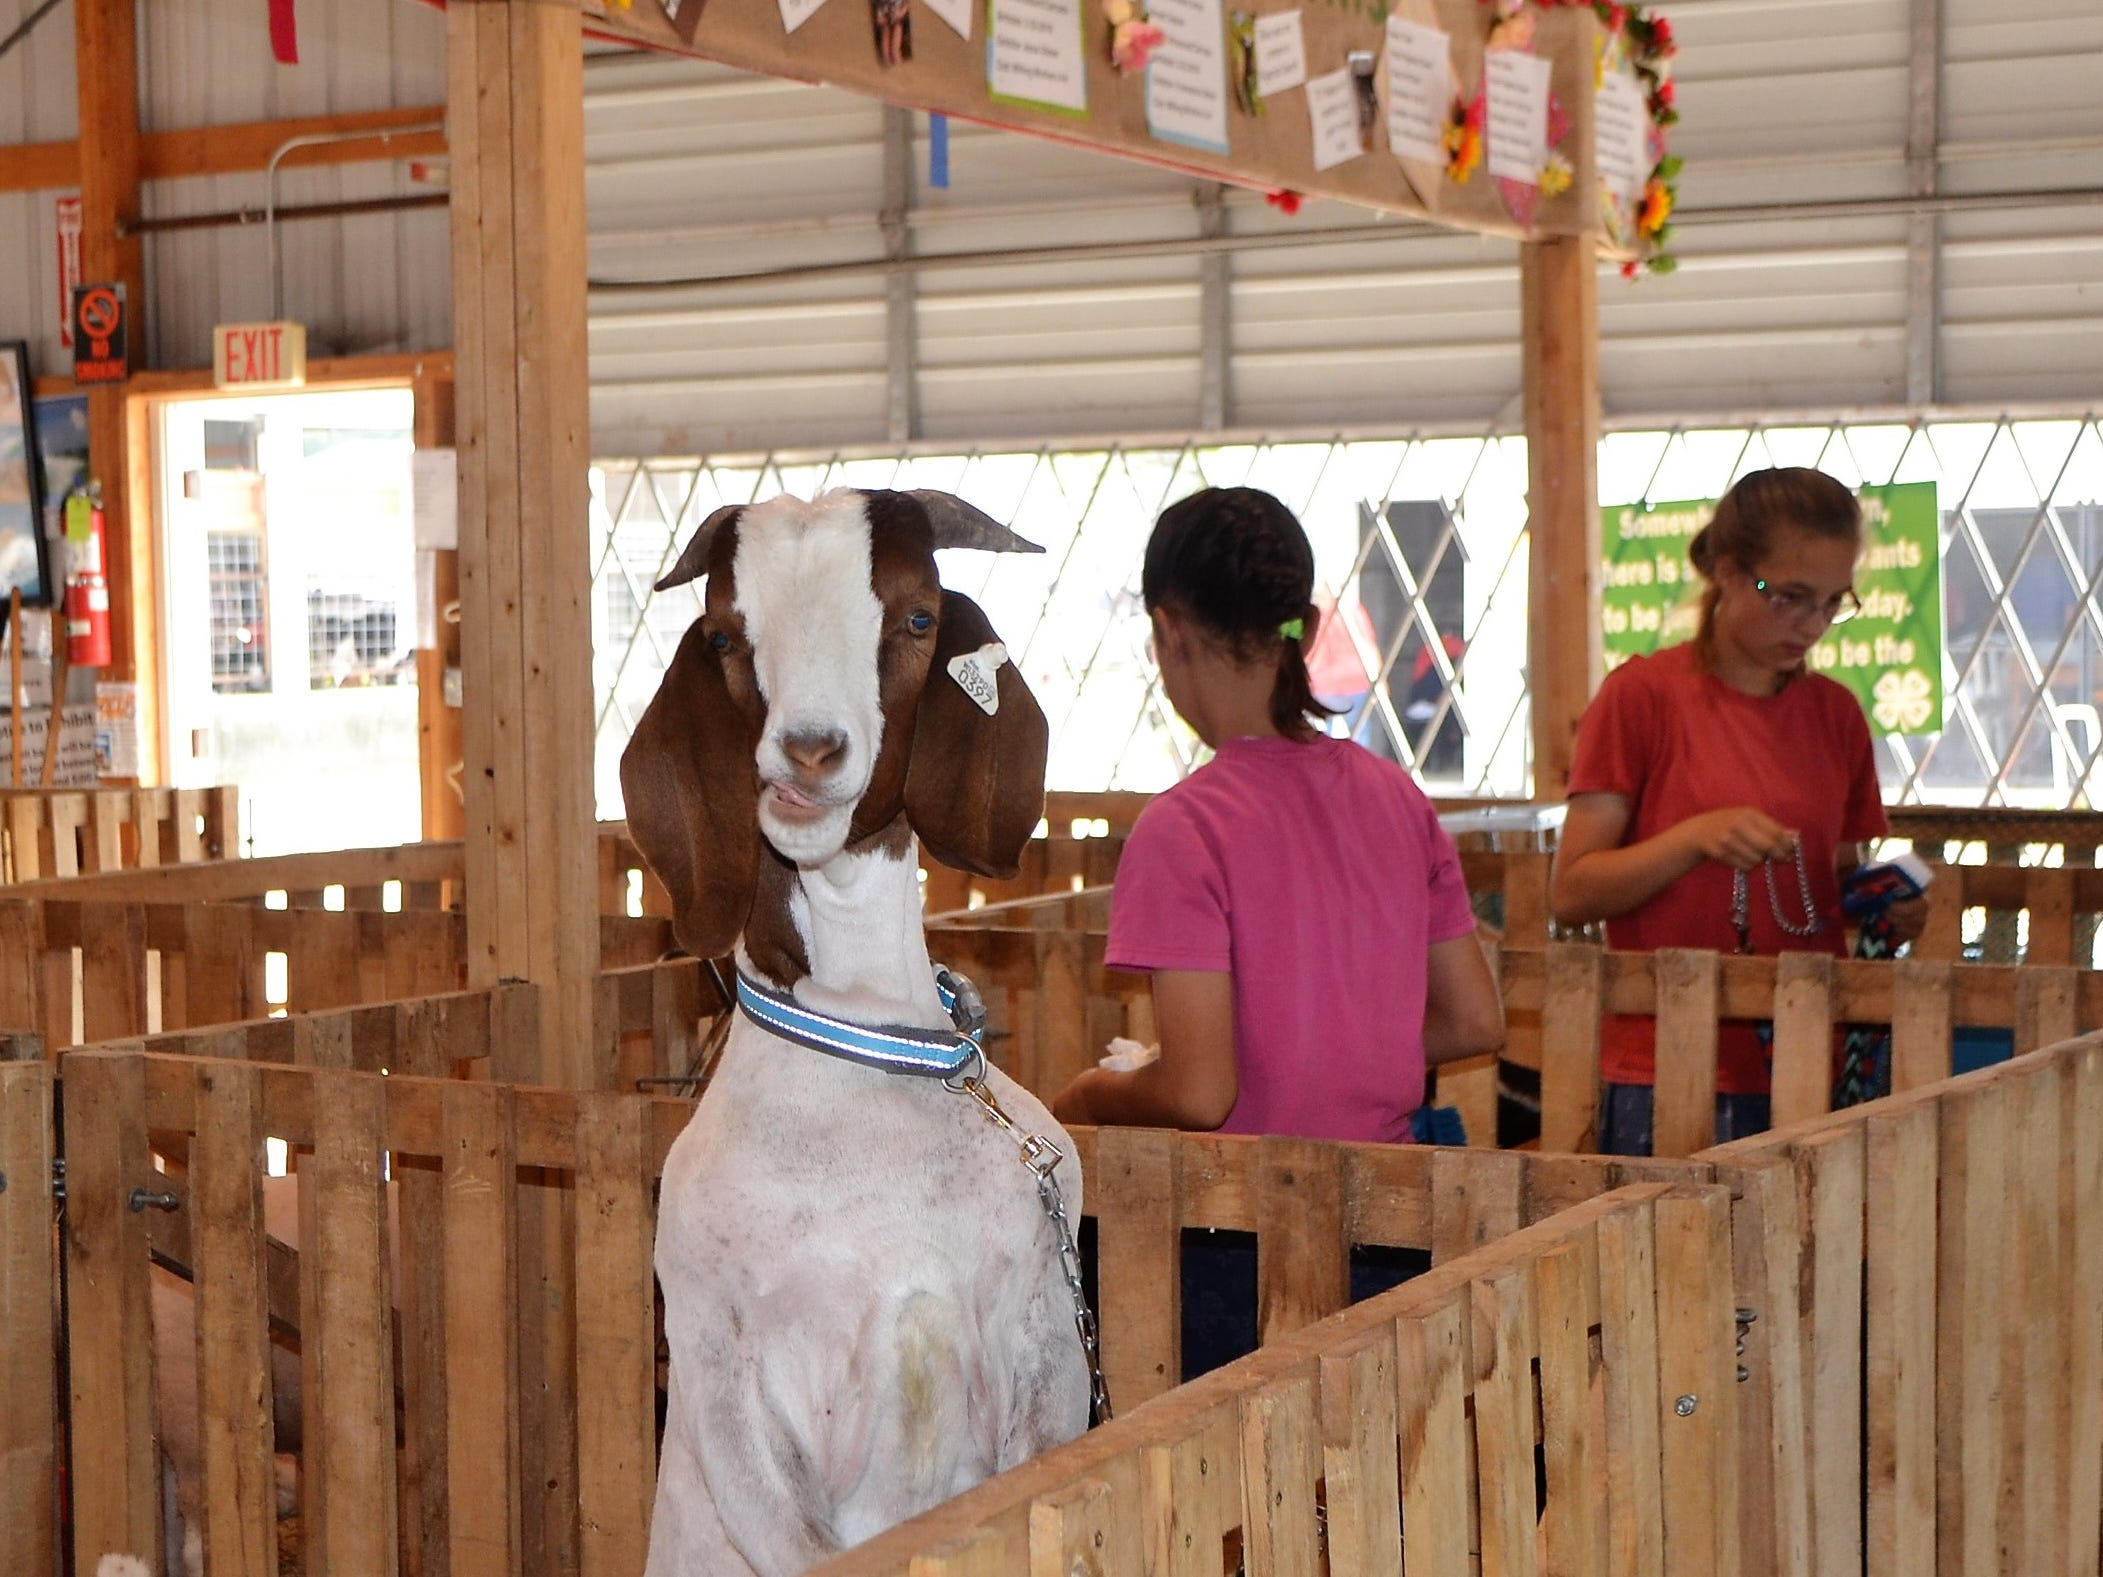 As youths prepare for their animals for the Goat Show at the Oconto County Fair on Saturday, Aug. 18, a curious goat props himself up to see what's going on above his pen.